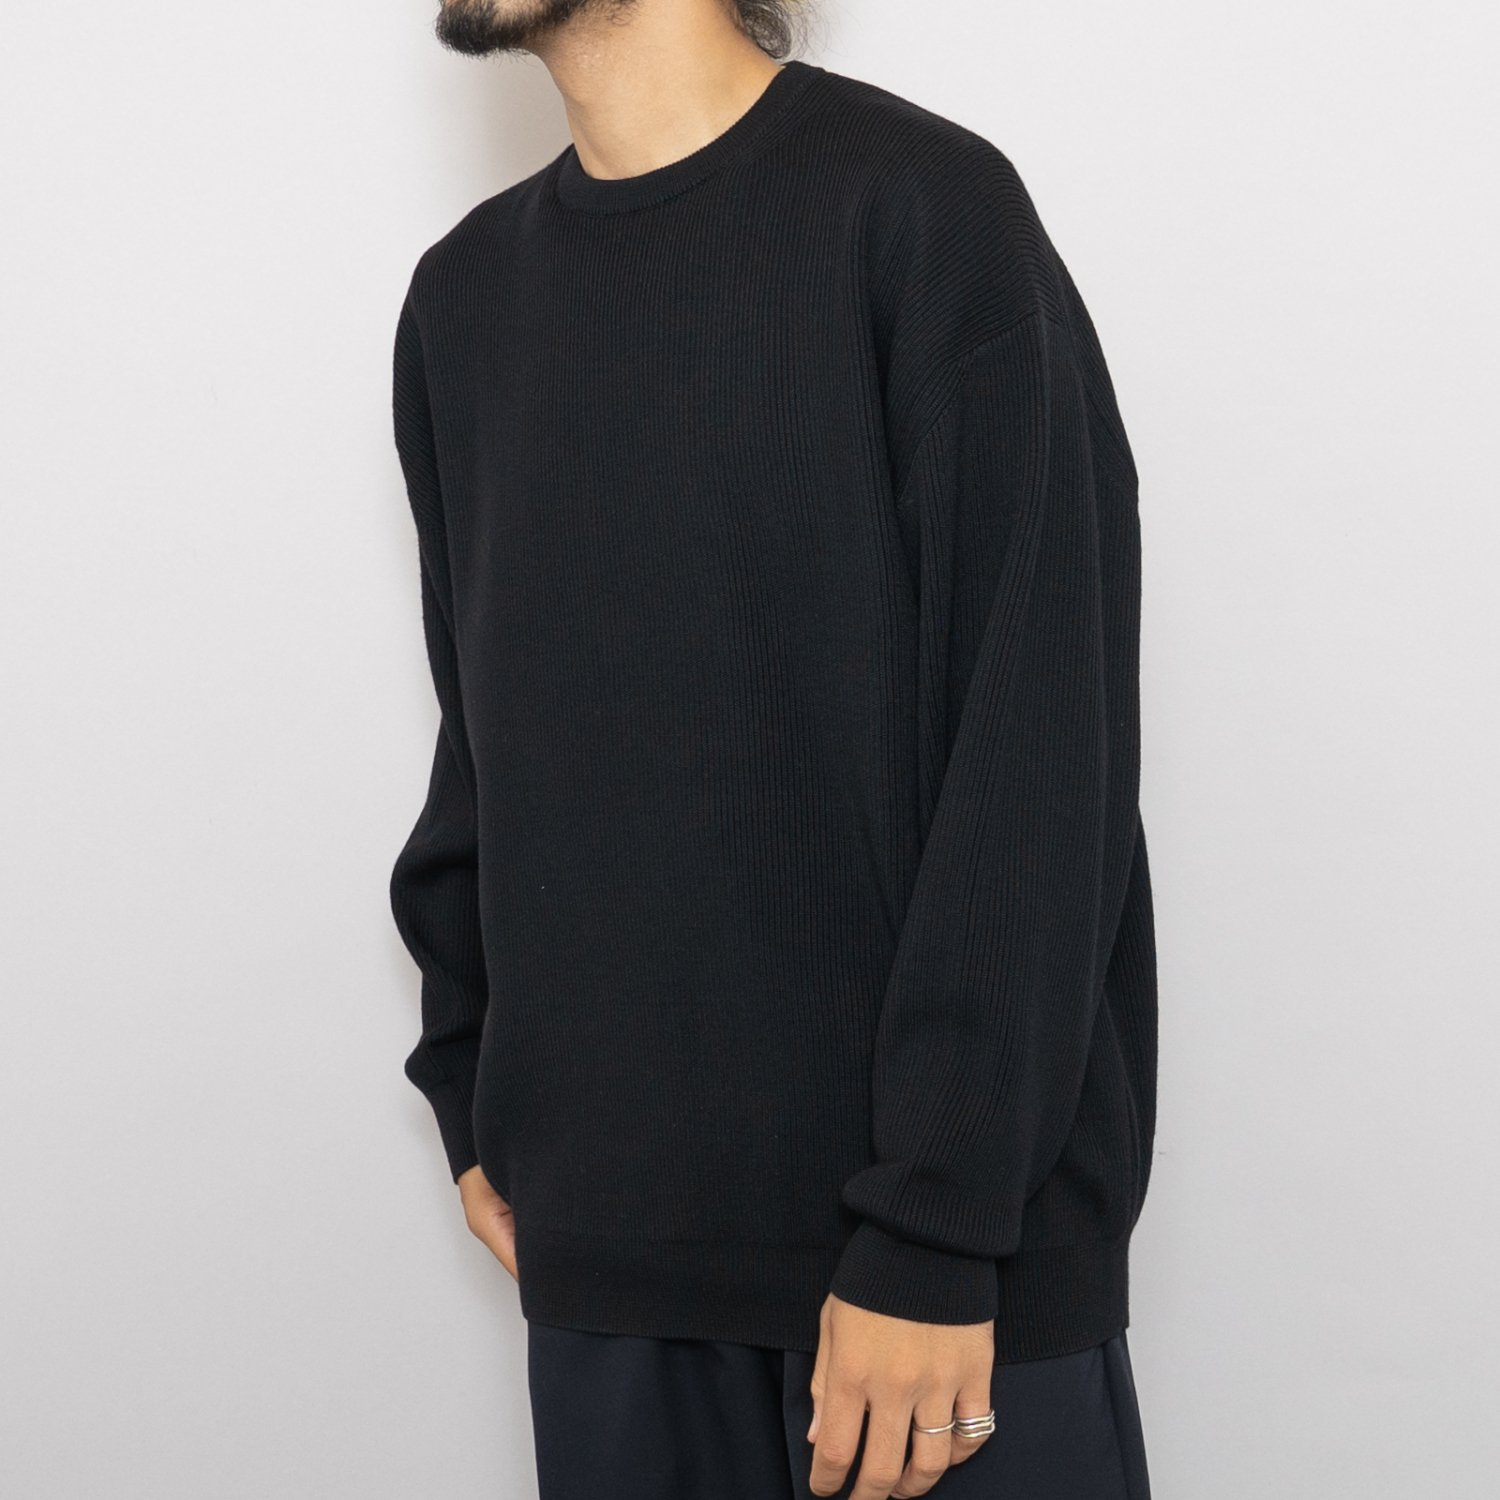 Graphpaper * High Density Crew Neck Knit * Black